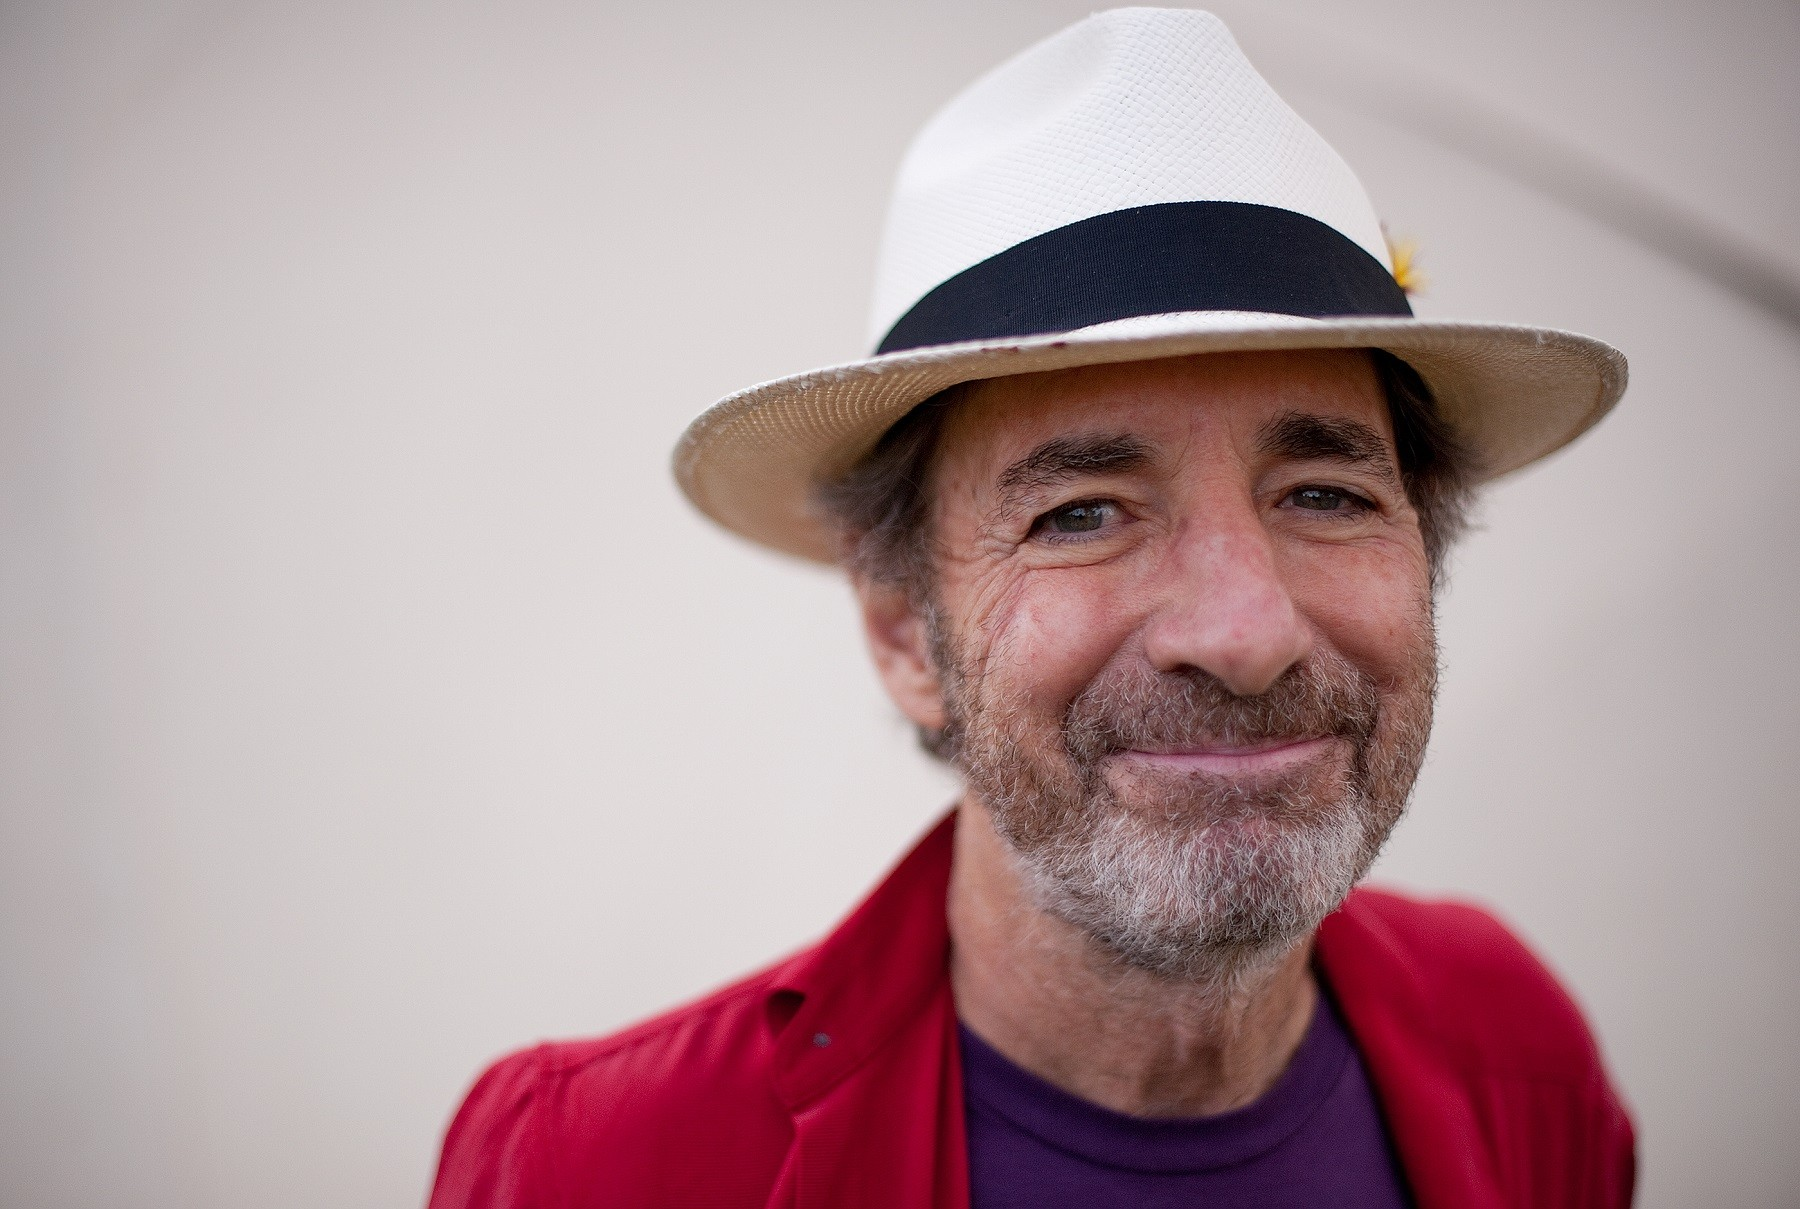 Harry Shearer, voice on The Simpsons and one of the highest-paid radio show hosts